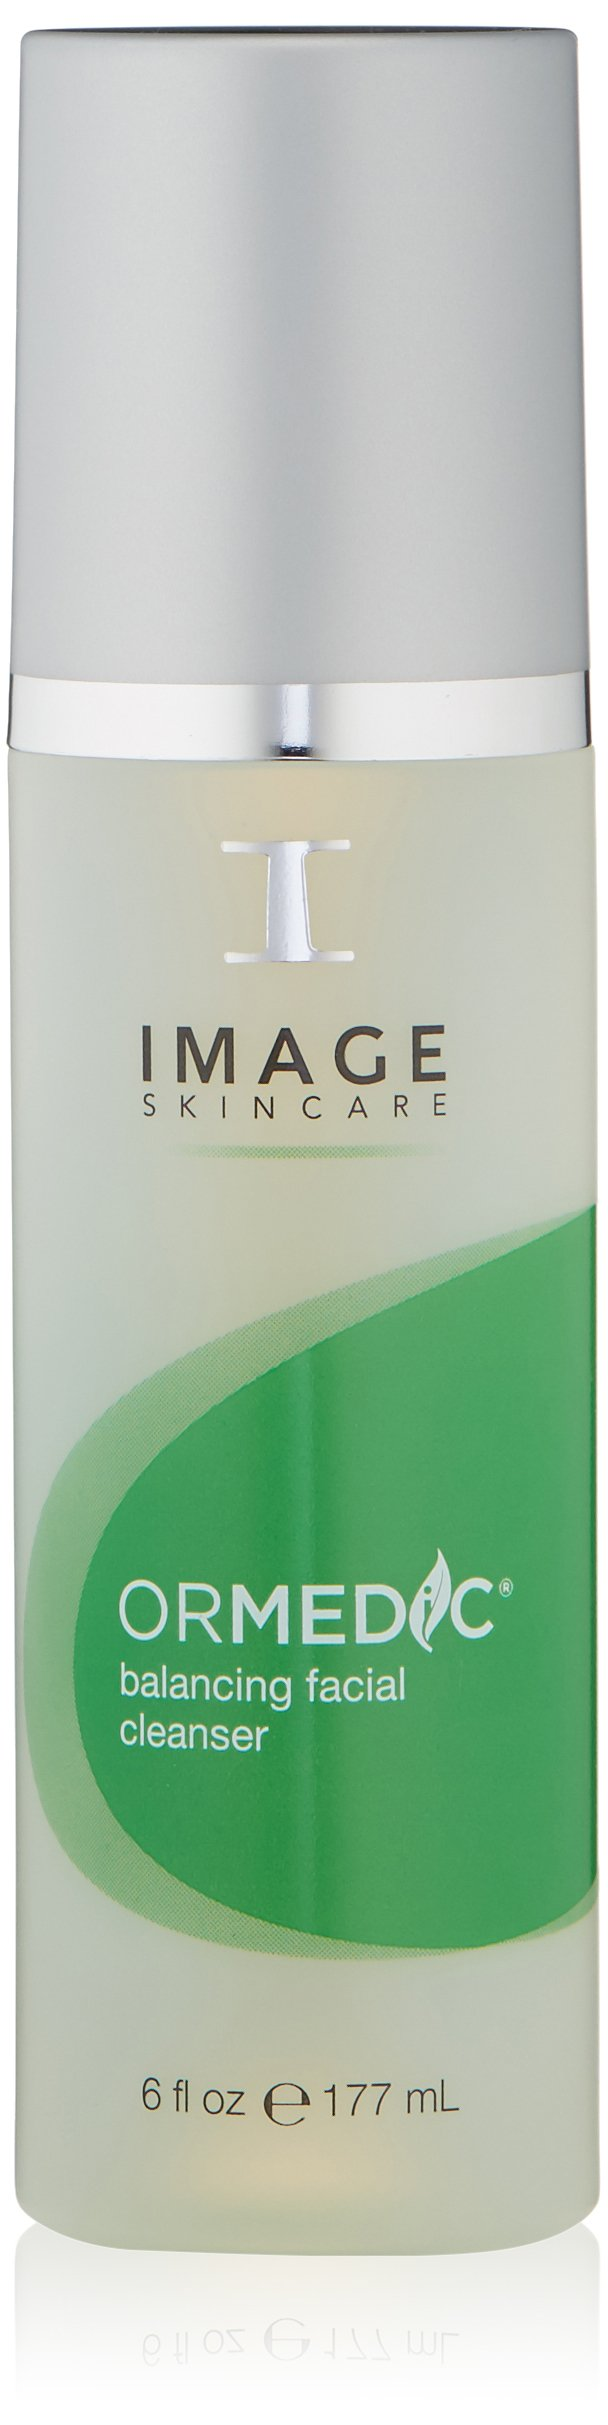 IMAGE Skincare Ormedic Balancing Facial Cleanser, 6 oz. by IMAGE Skincare